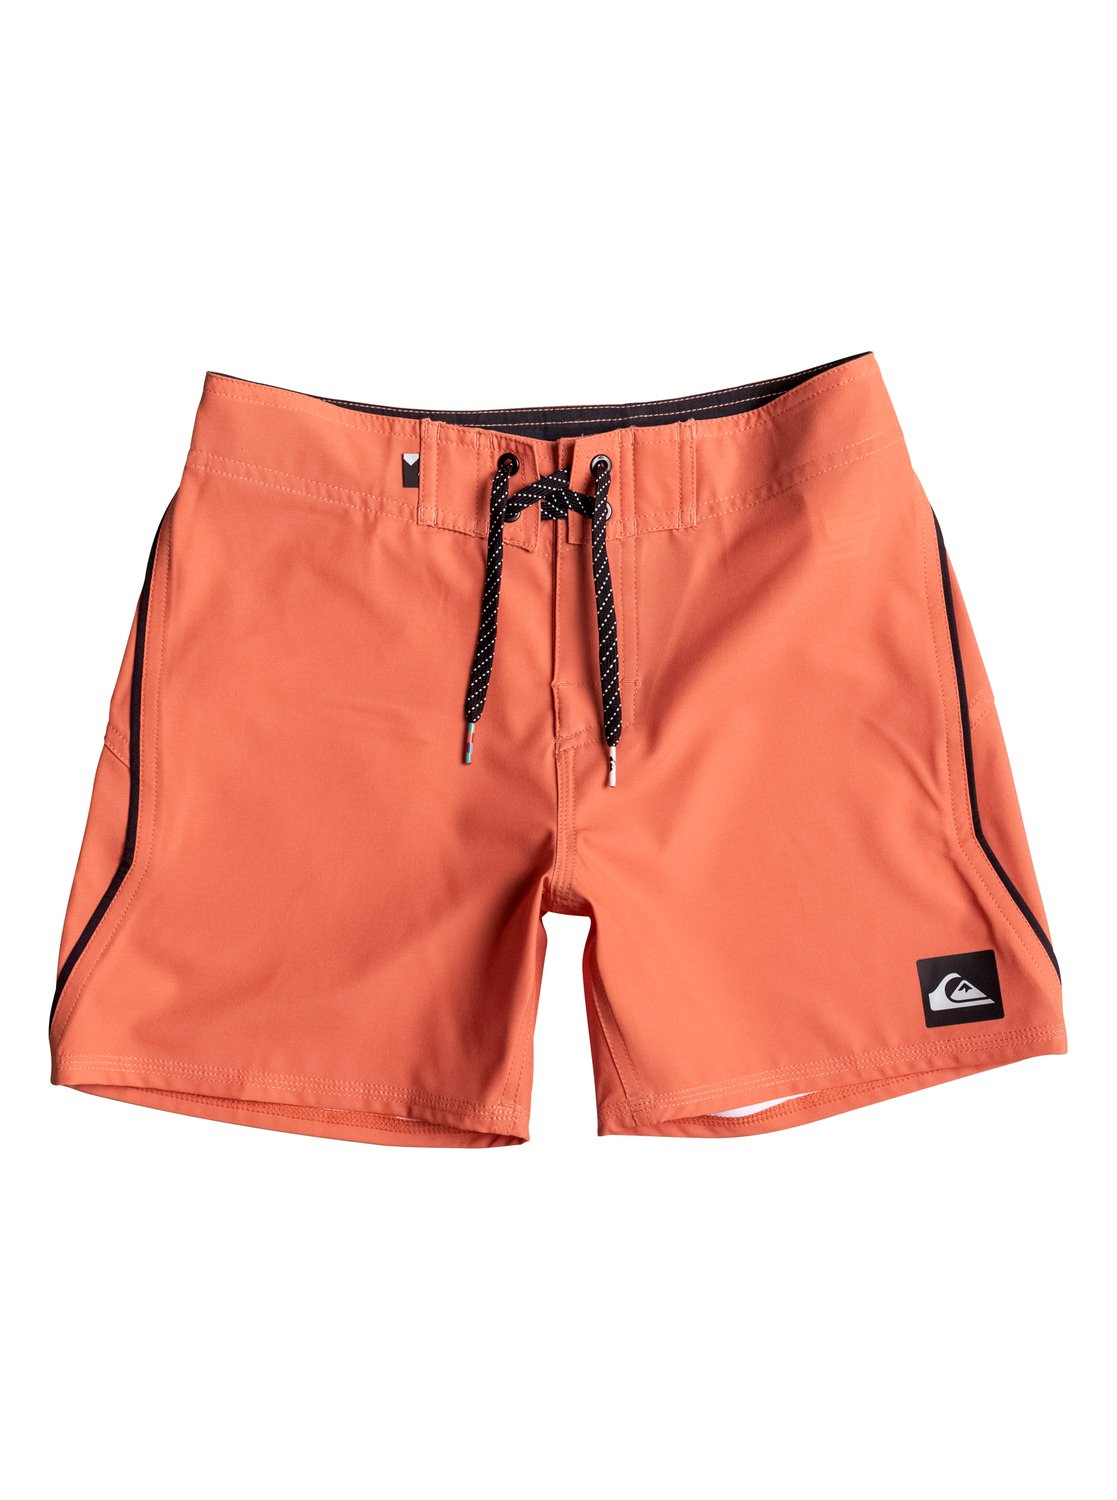 everyday kaimana 14  board shorts